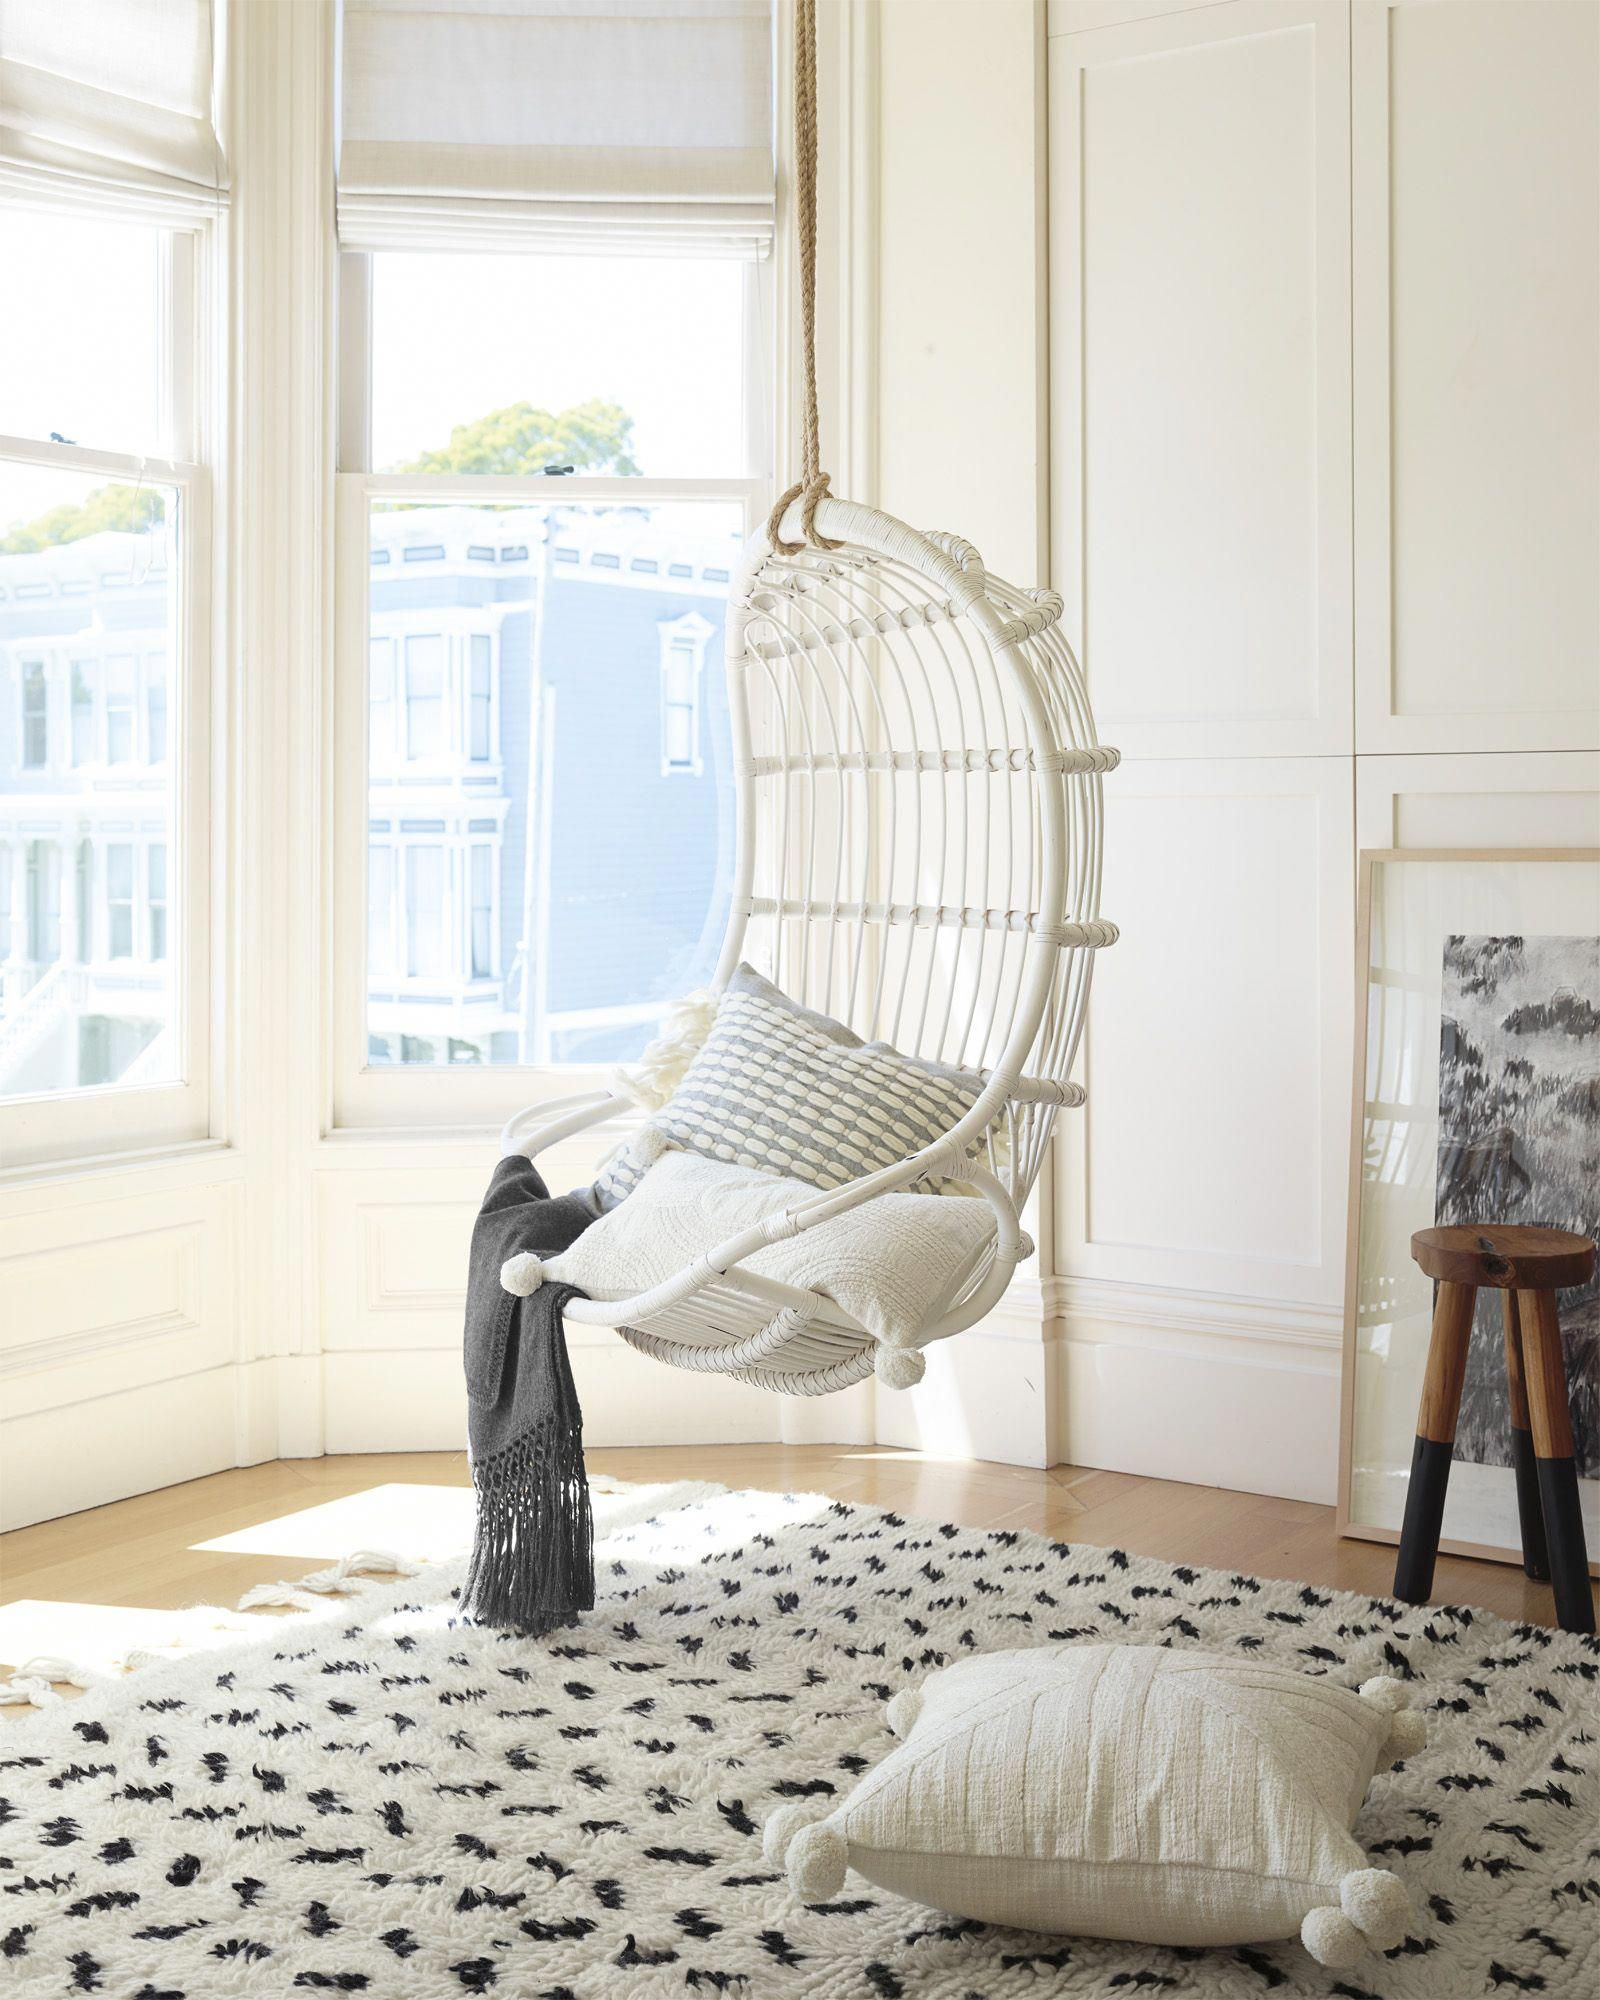 hanging chair serena and lily small chaise lounge rattan chairs hangingeggchair